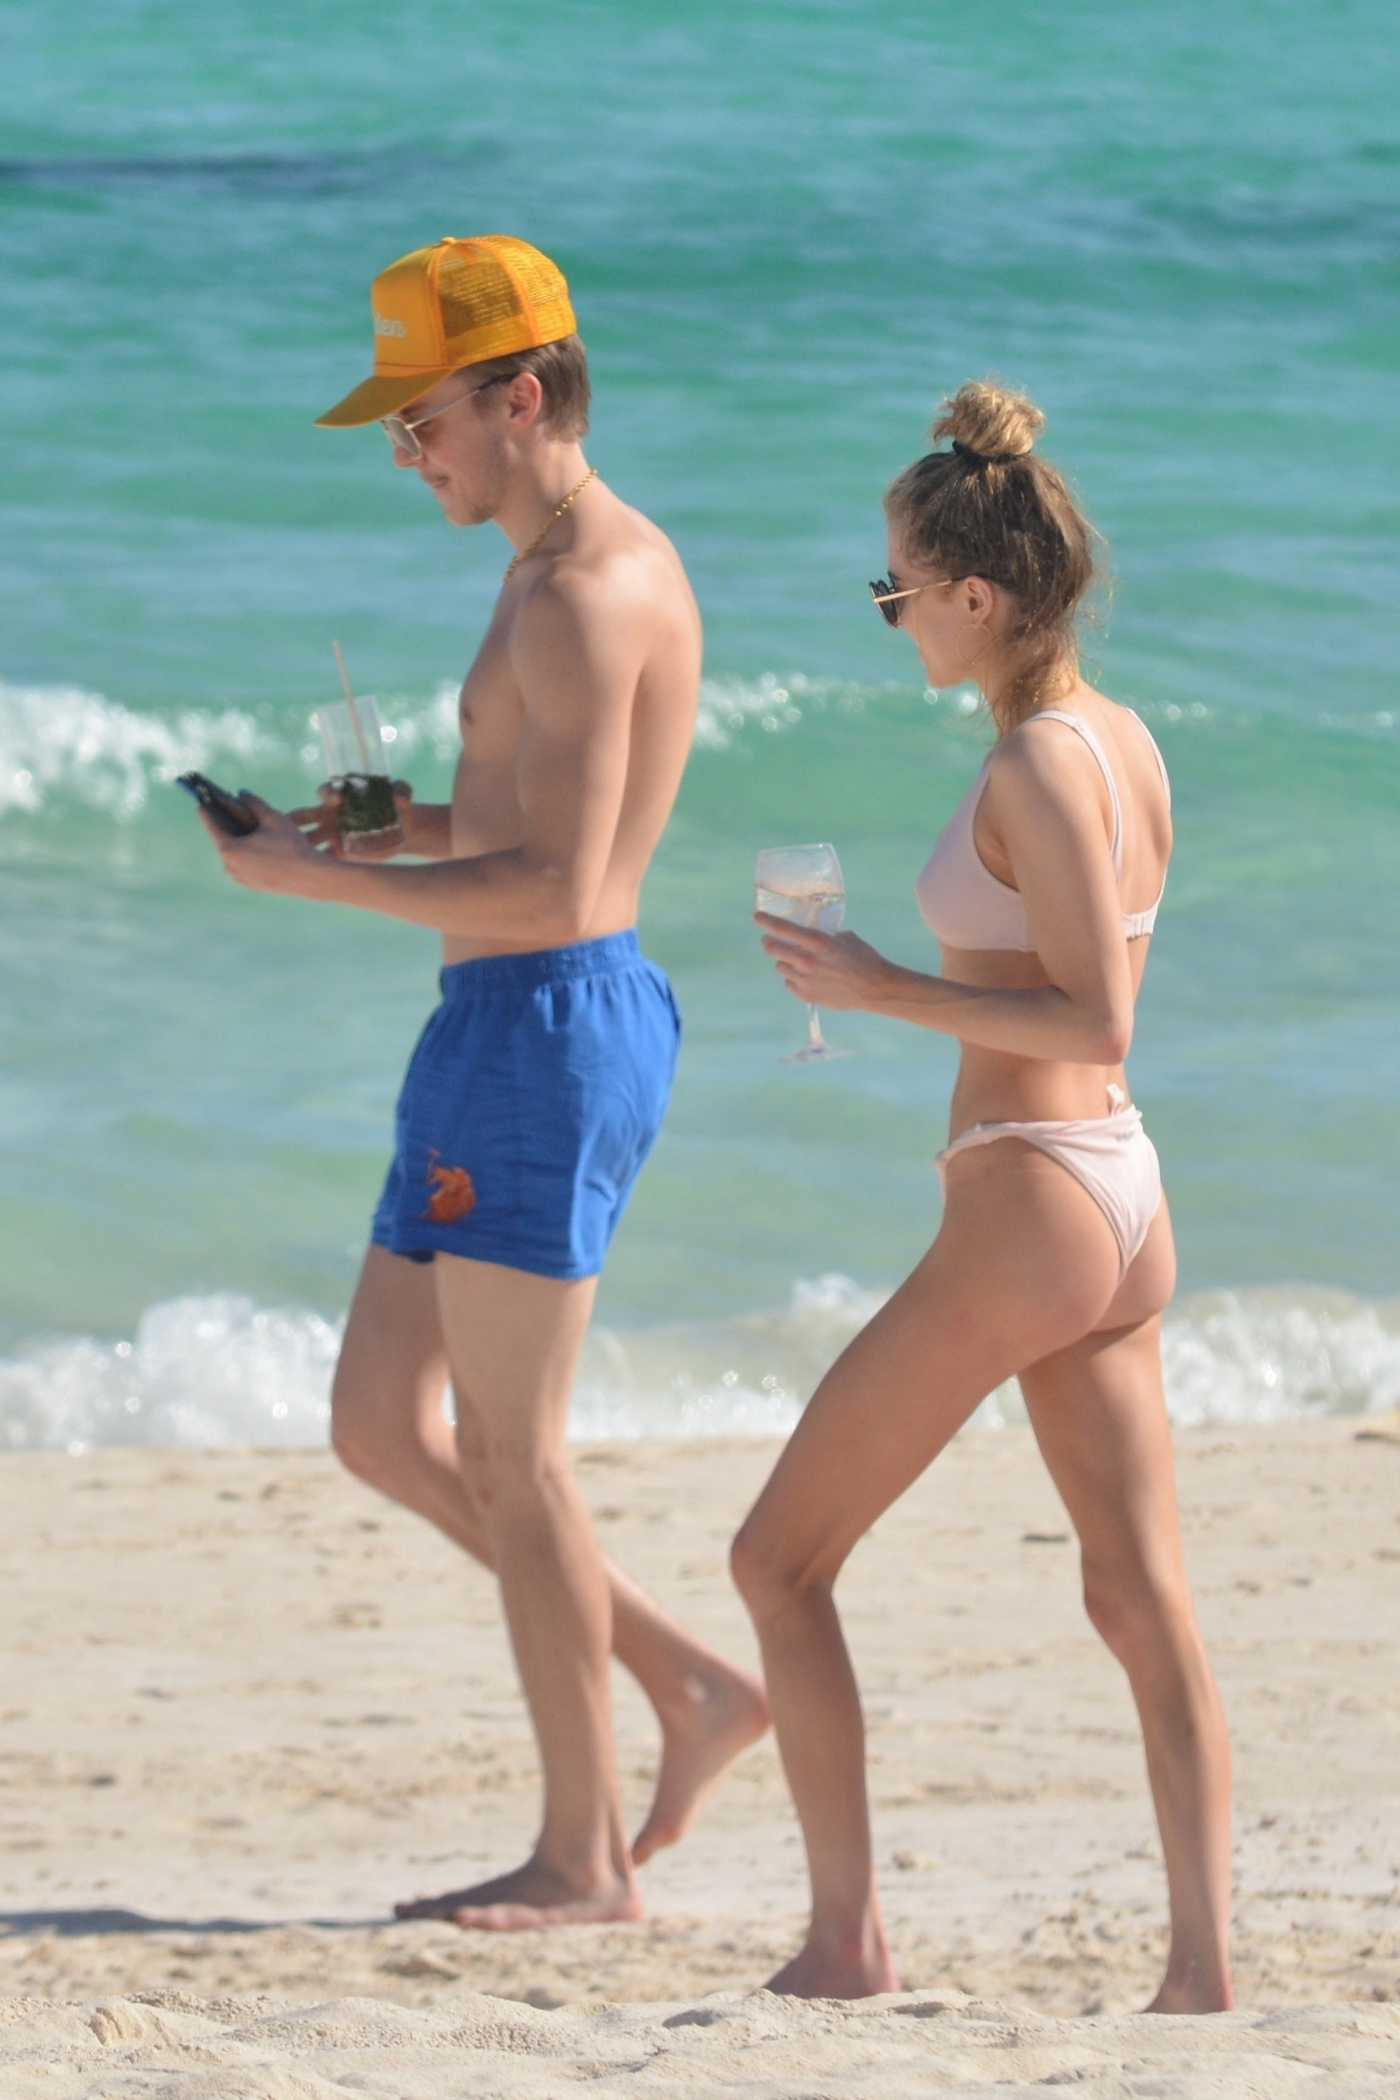 Anne Winters in Bikini Out with Her Boyfriend Taylor Beau on the Beach in Tulum 01/28/2020